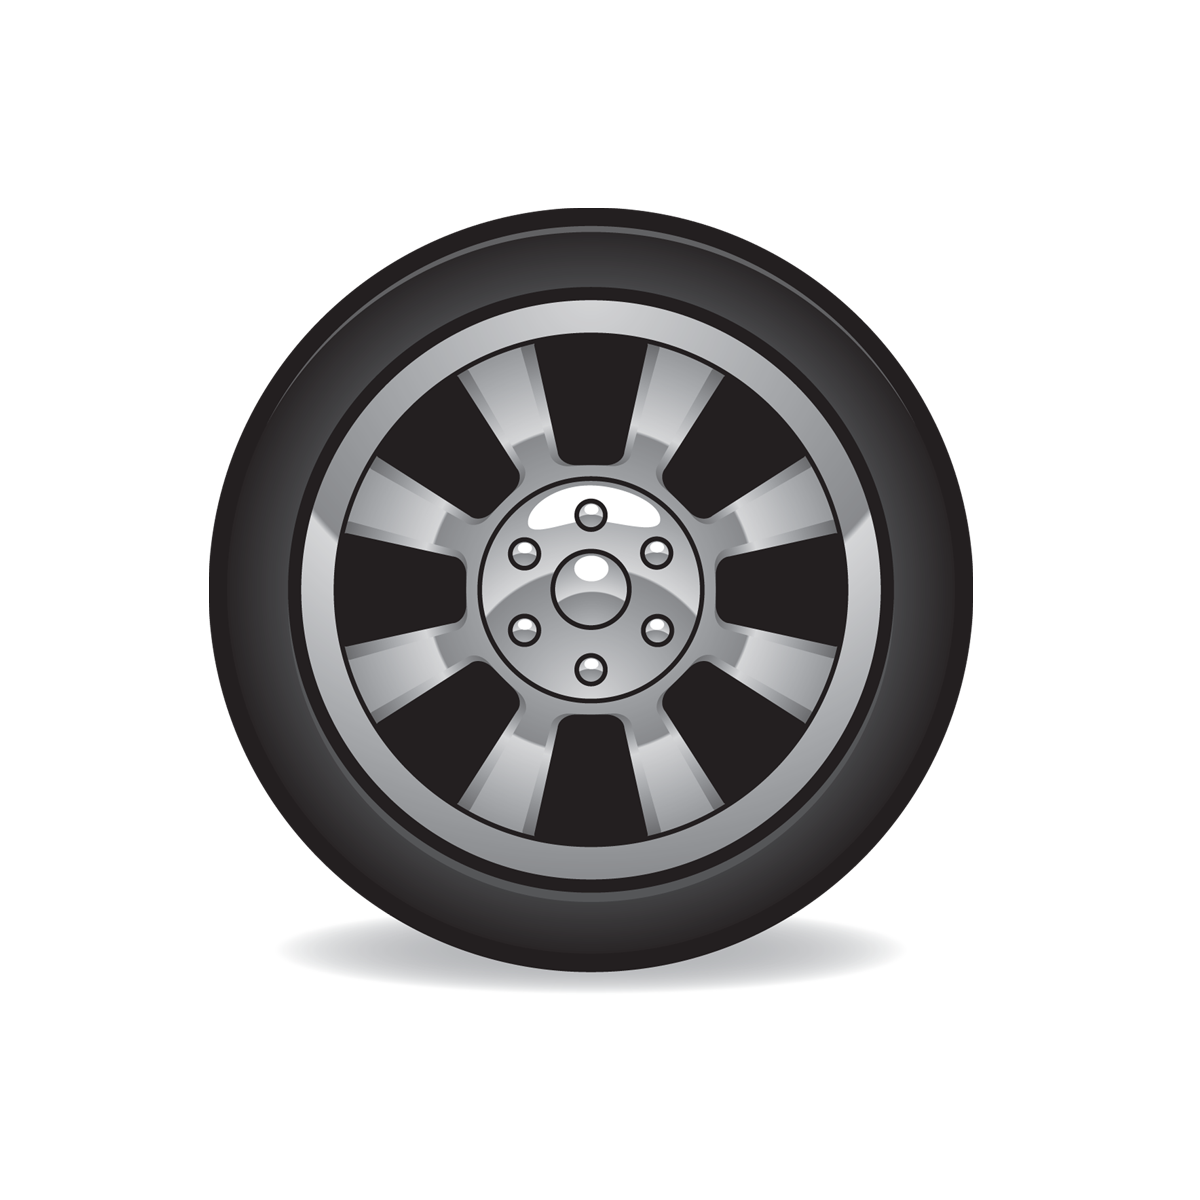 Car tyre clipart graphic free download Free Tire Cliparts, Download Free Clip Art, Free Clip Art on Clipart ... graphic free download